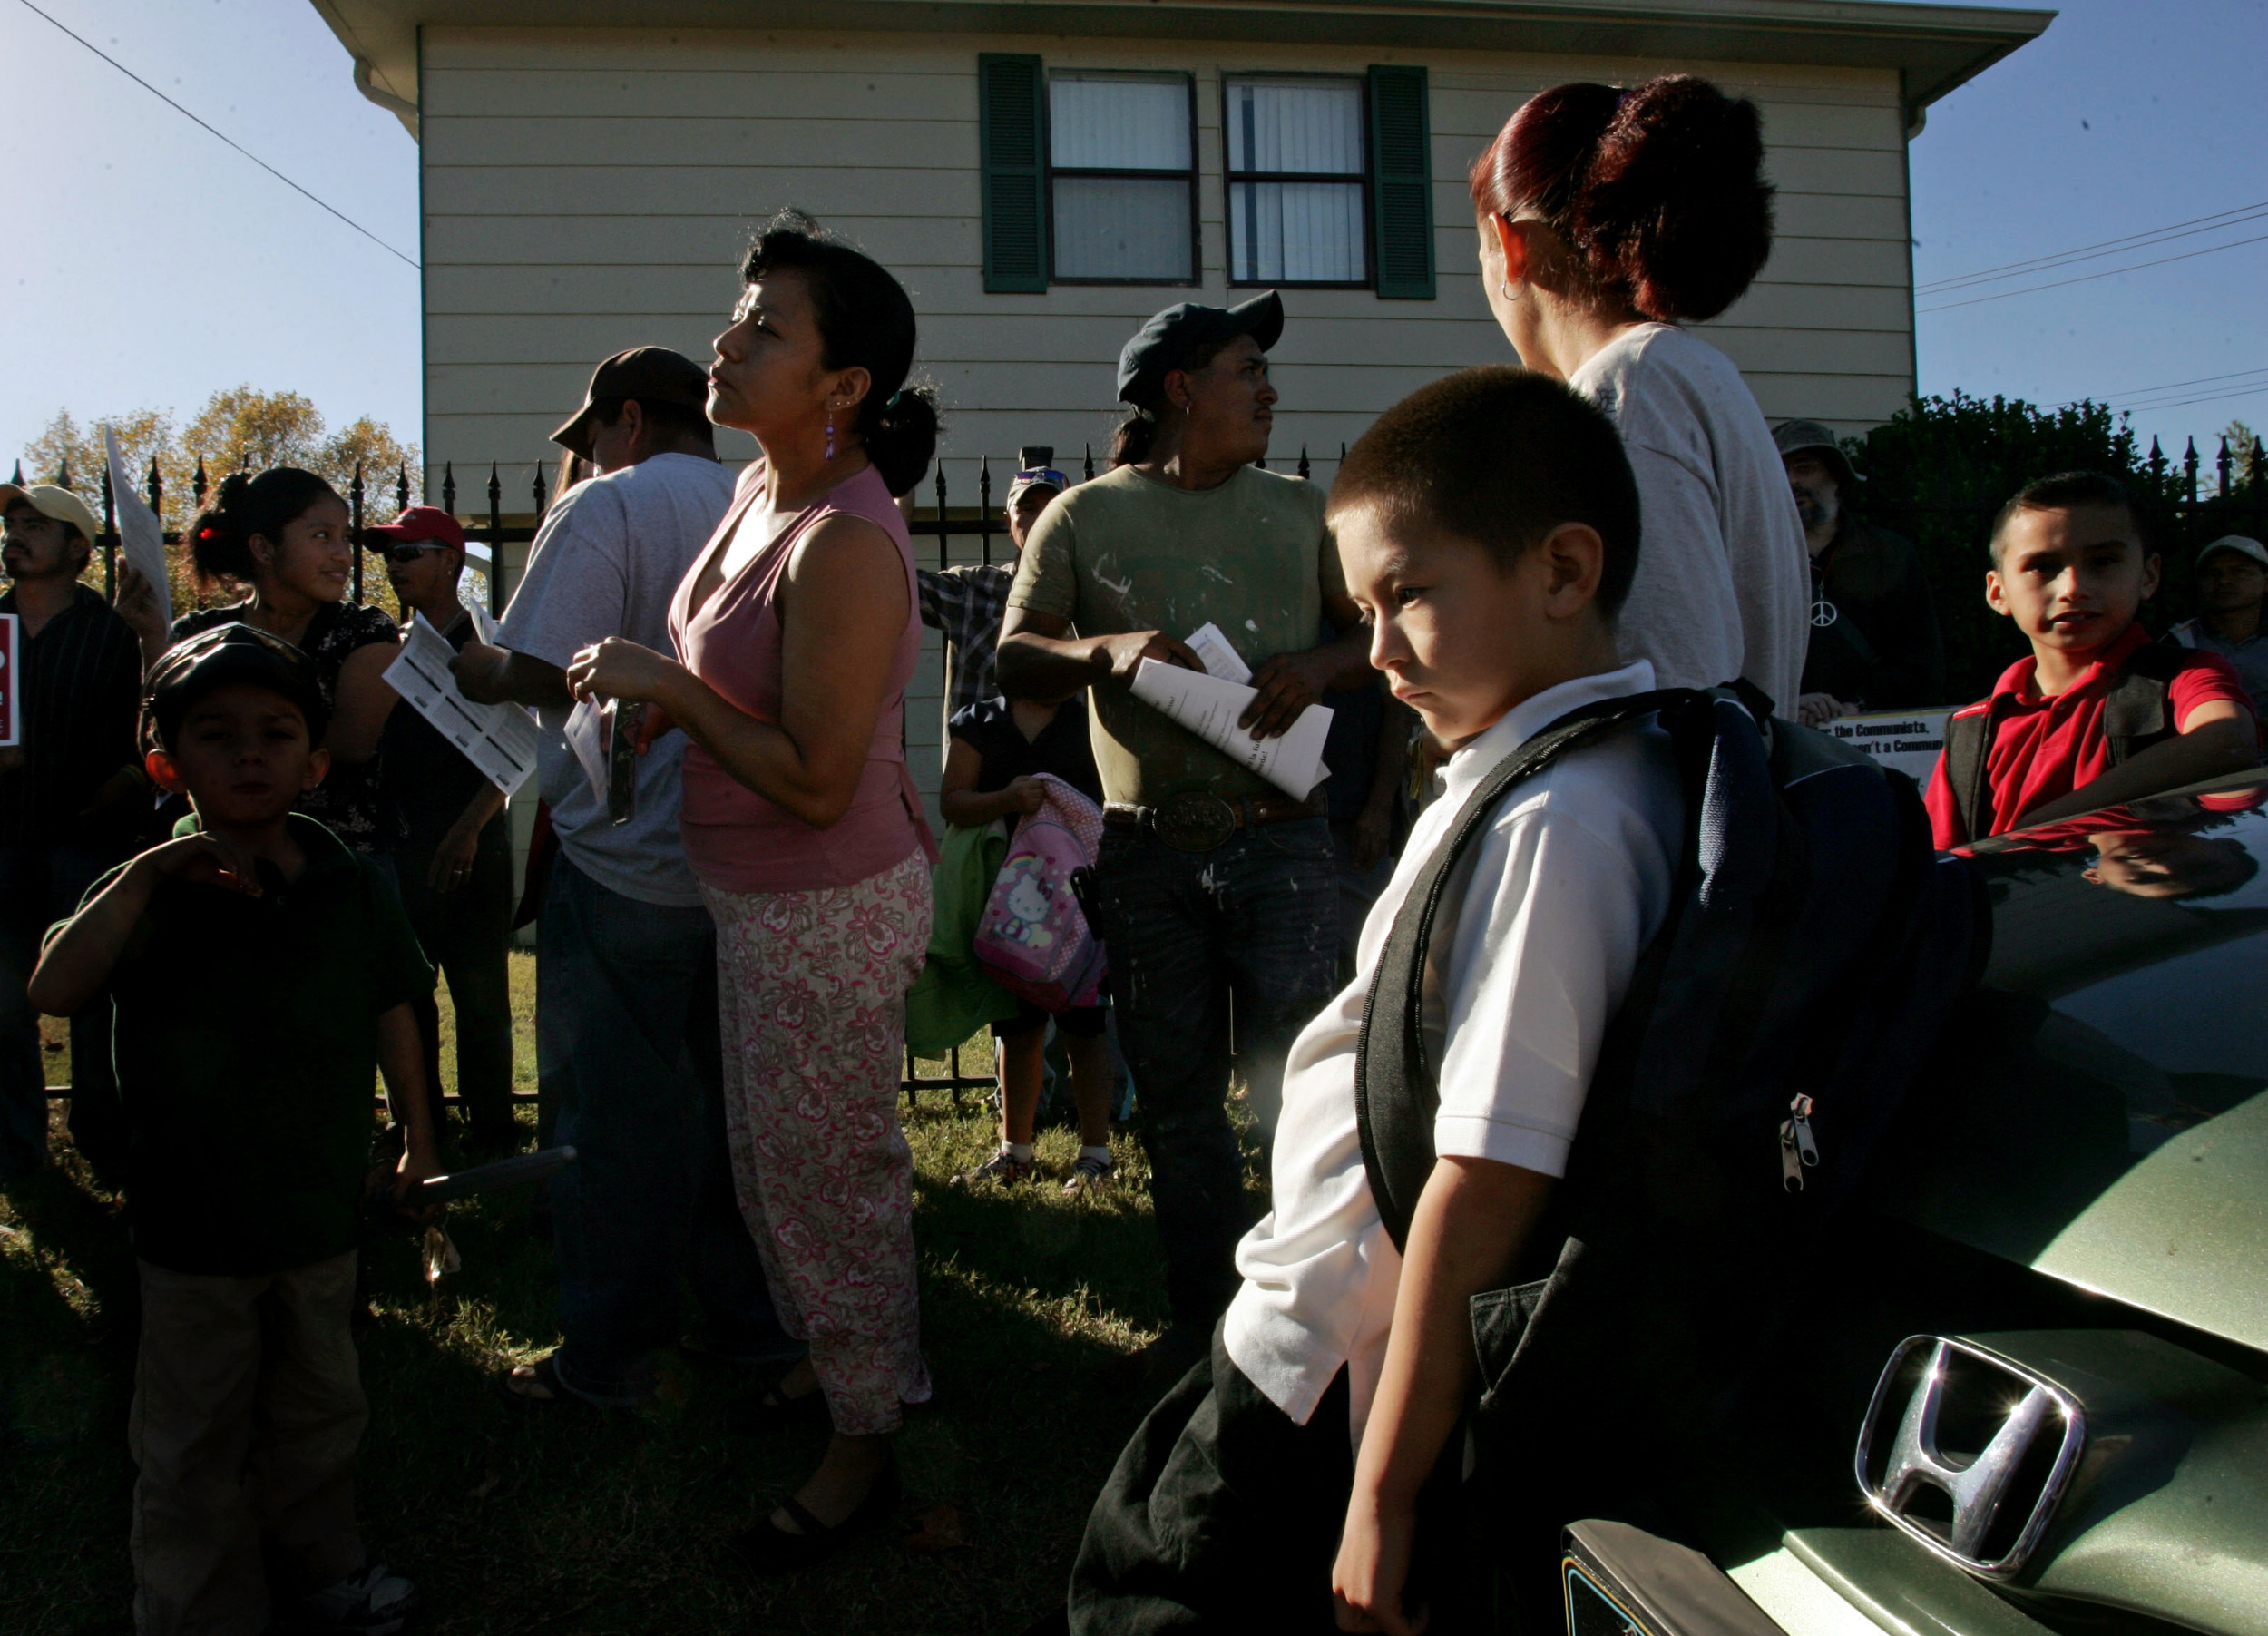 Residents of Clairmont Apartments after immigration raids that residents said were retaliation for complaints  of poor living conditions October 28, 2010 in Nashville, Tenn.